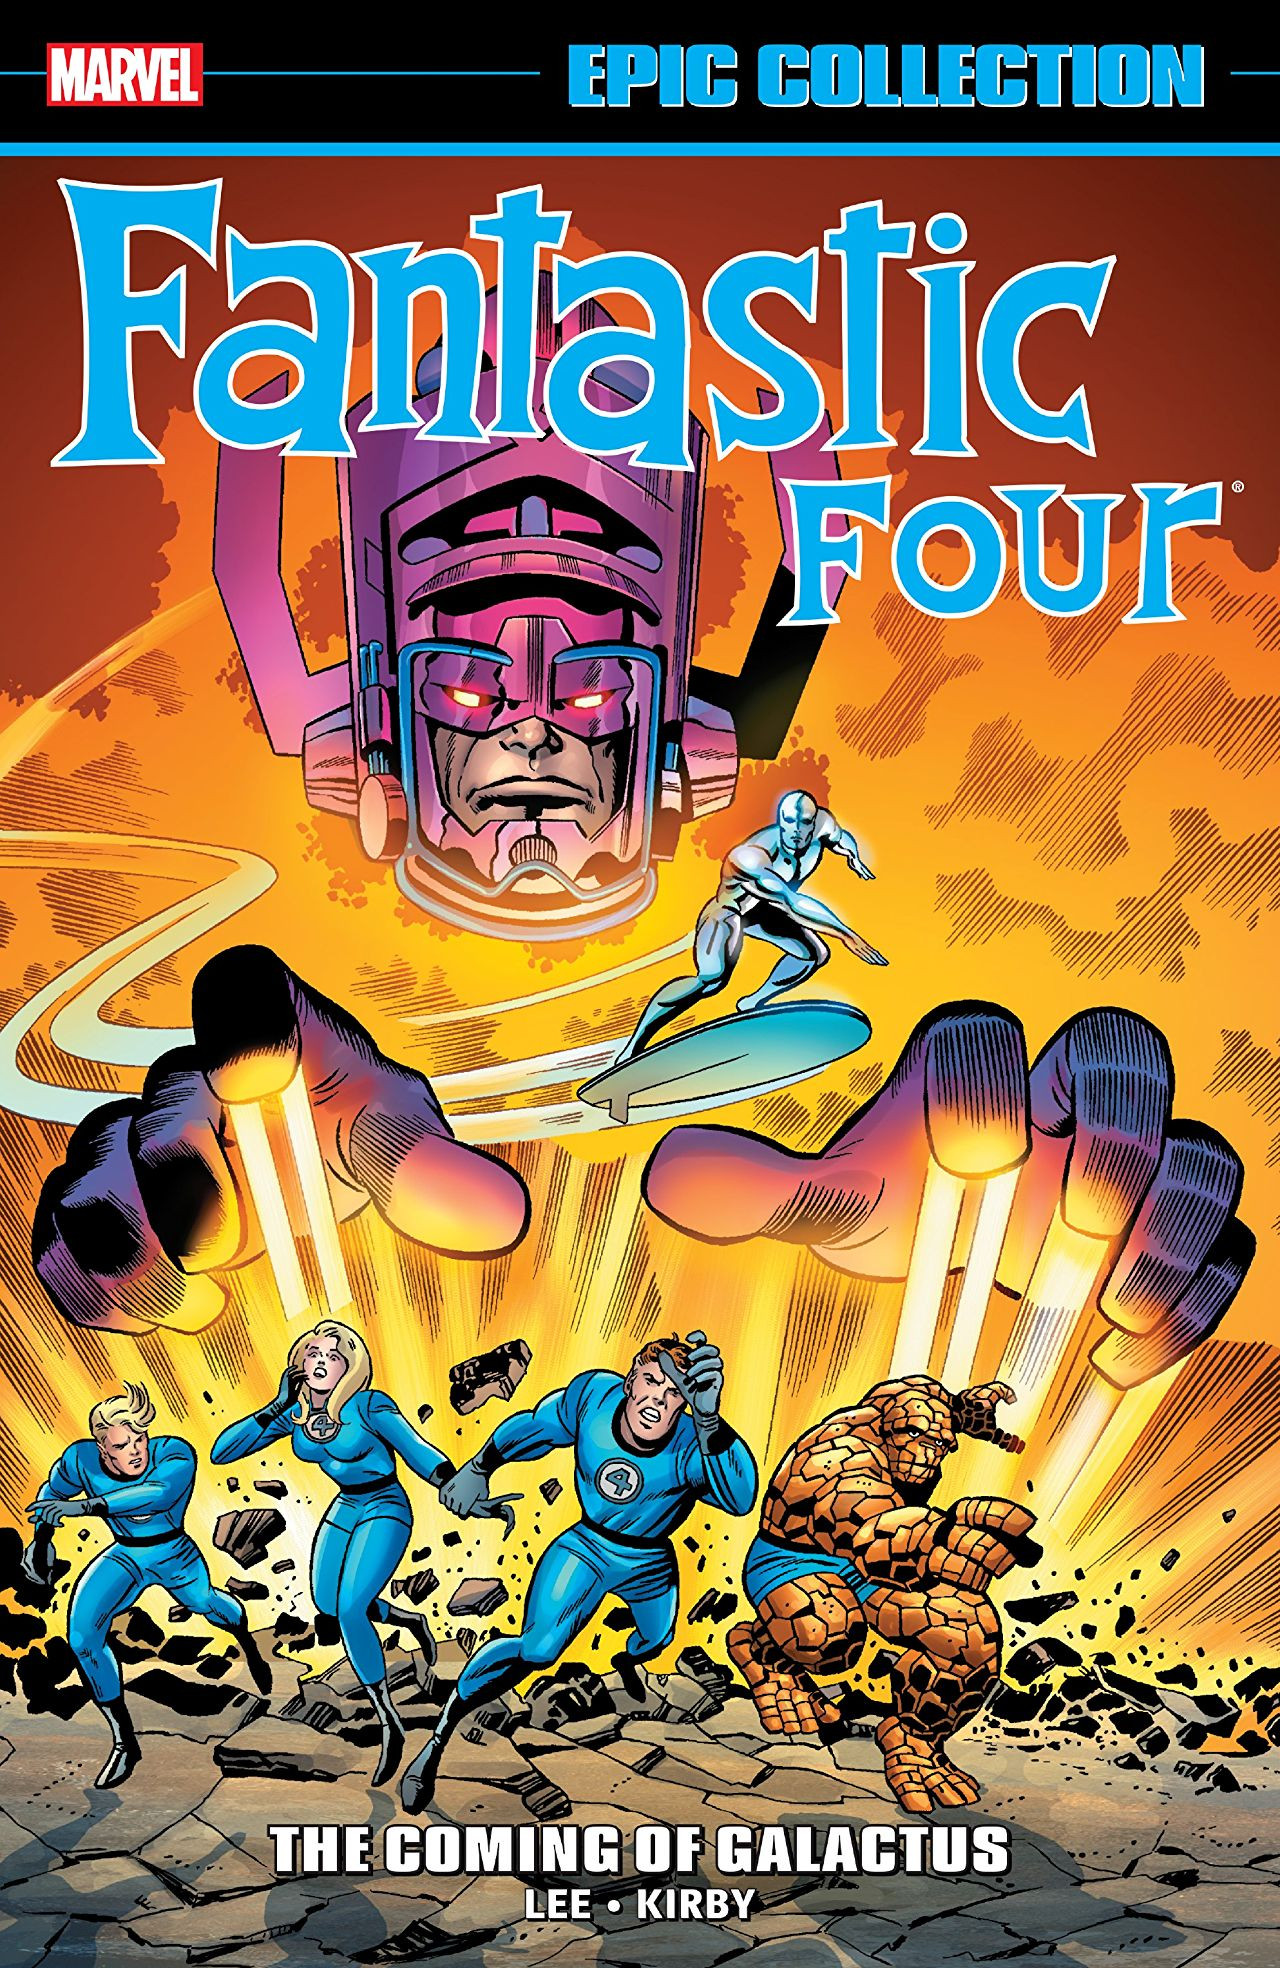 Epic Collection: Fantastic Four Vol 1 3